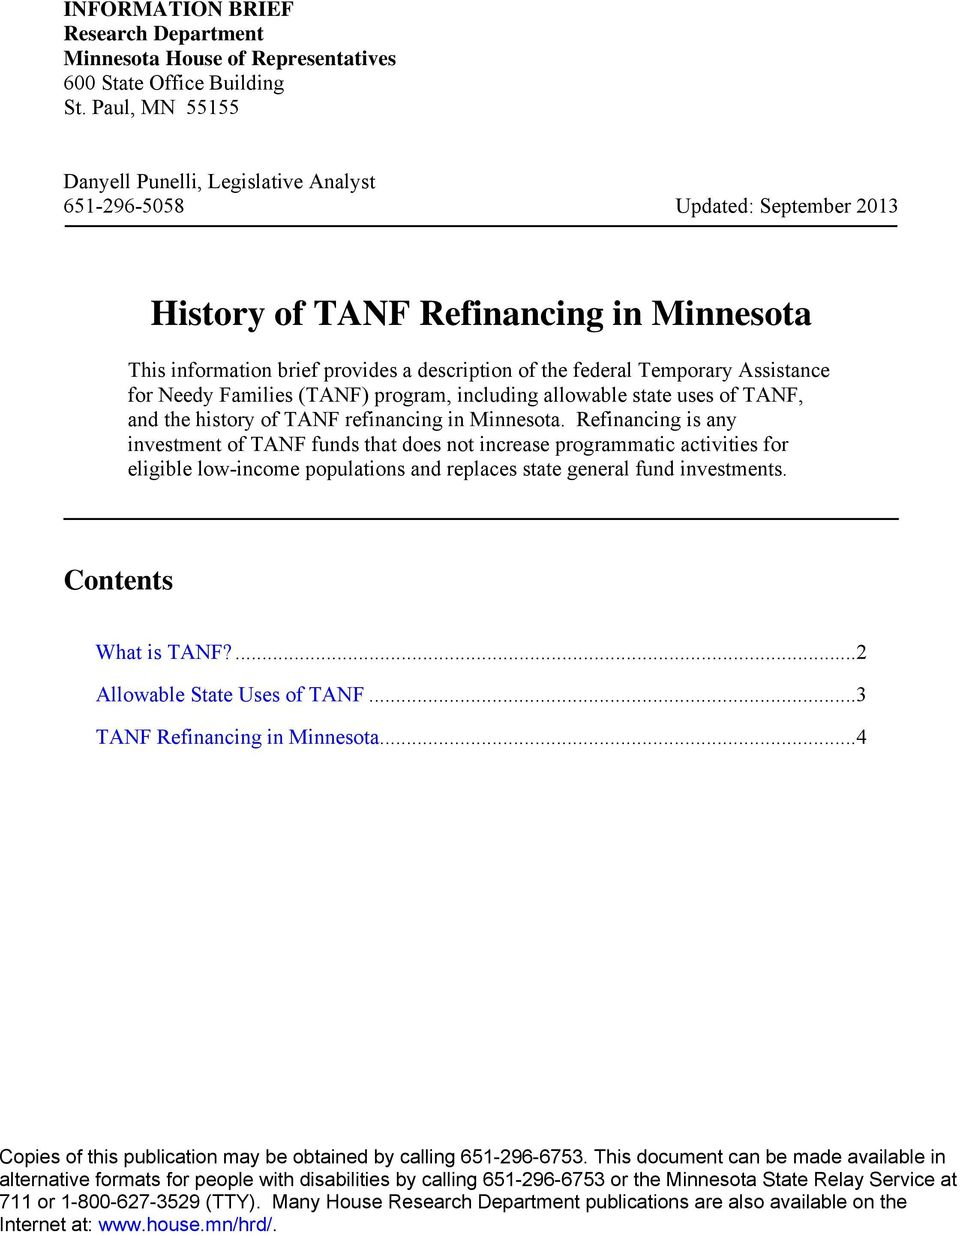 Temporary Assistance for Needy Families (TANF) program, including allowable state uses of TANF, and the history of TANF refinancing in Minnesota.